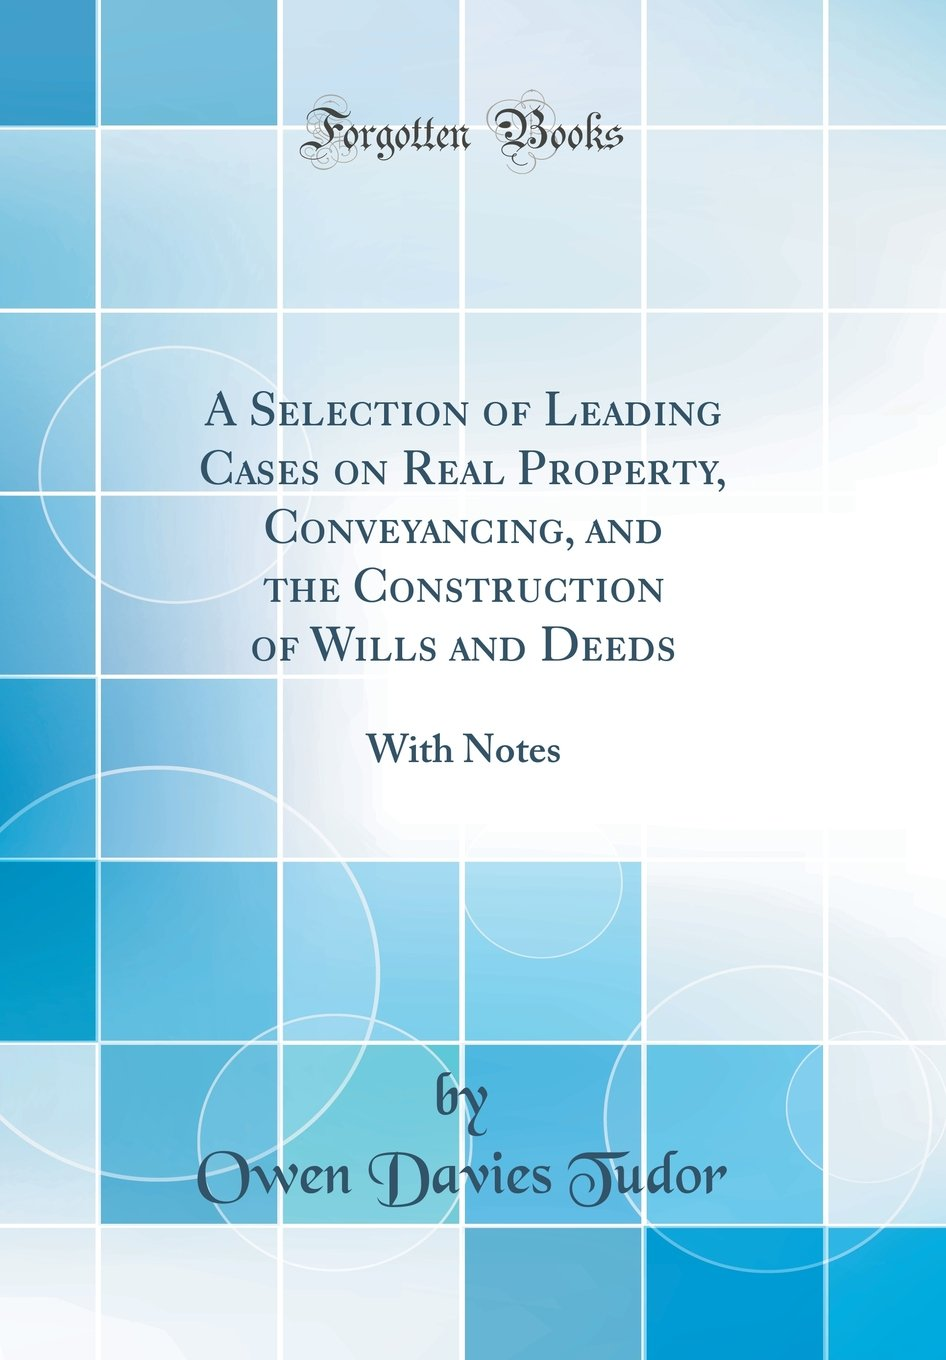 Download A Selection of Leading Cases on Real Property, Conveyancing, and the Construction of Wills and Deeds: With Notes (Classic Reprint) ebook